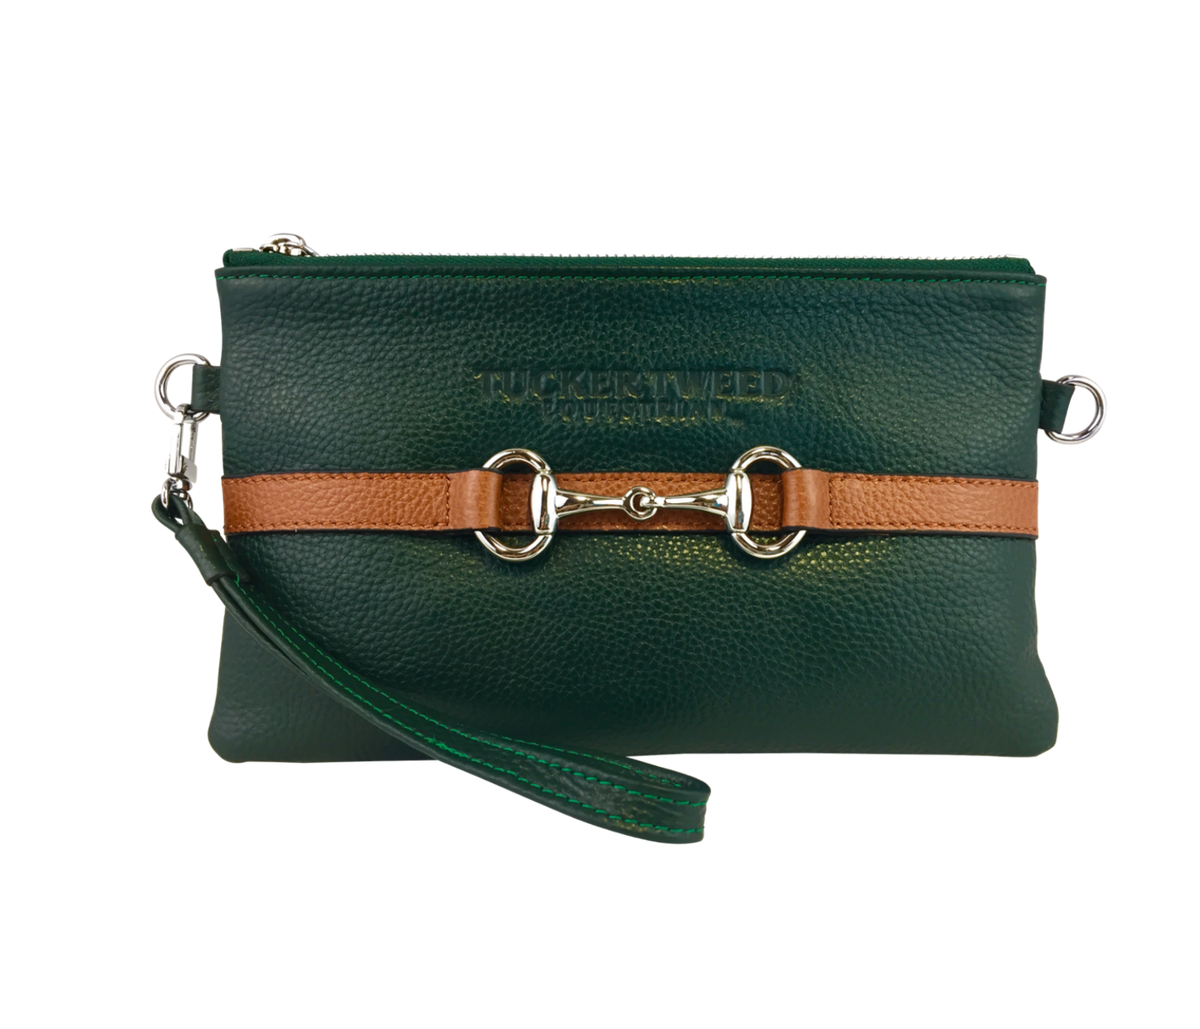 Tucker Tweed Leather Handbags Hunter Green/Chestnut The Wellington Wristlet